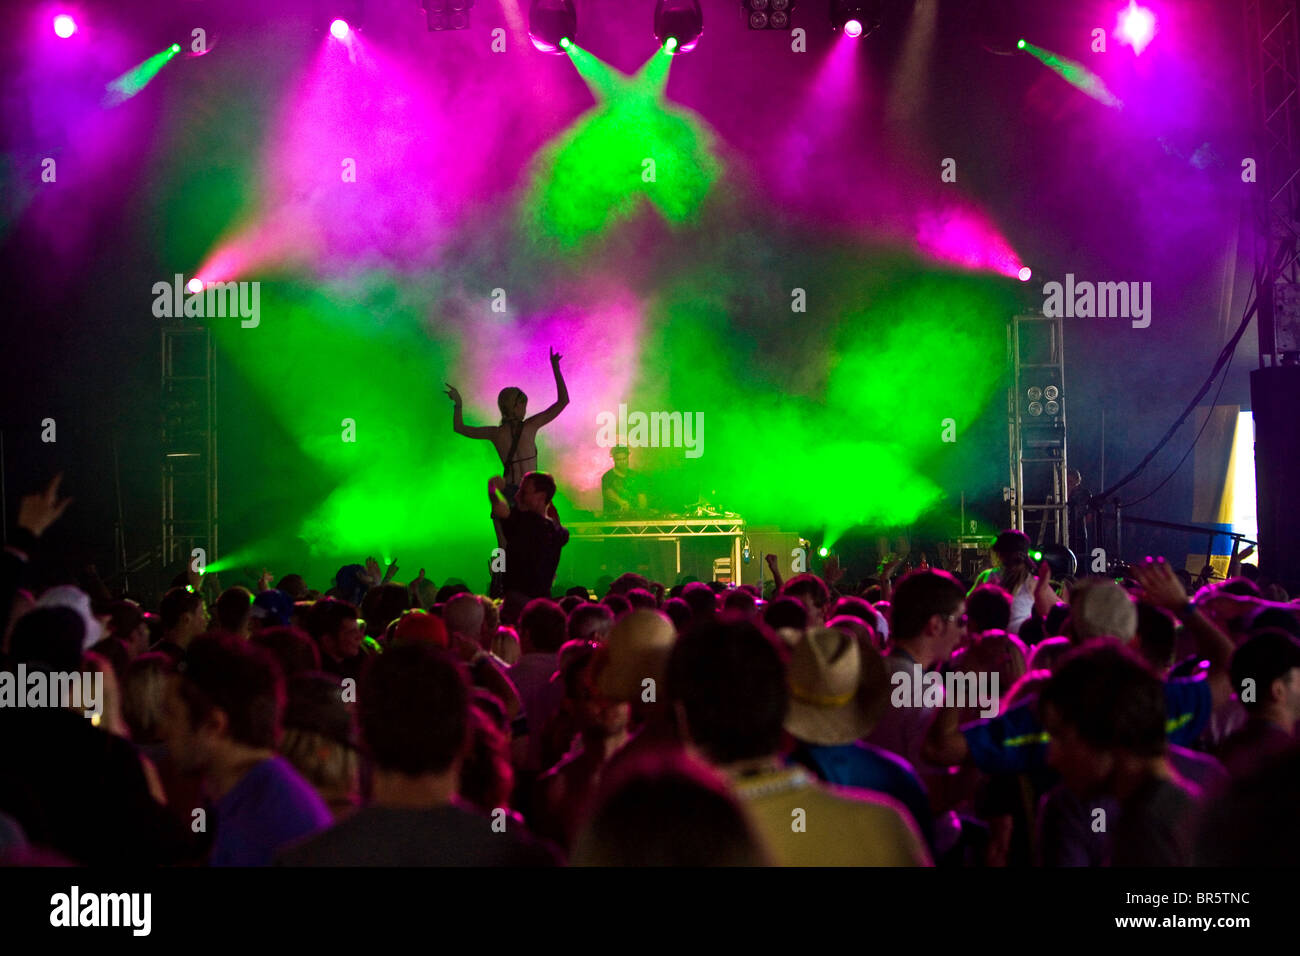 A woman up on shoulders puts her hands in the air during Pete Tong's set, playing Fat Sam's tent, Rockness. - Stock Image